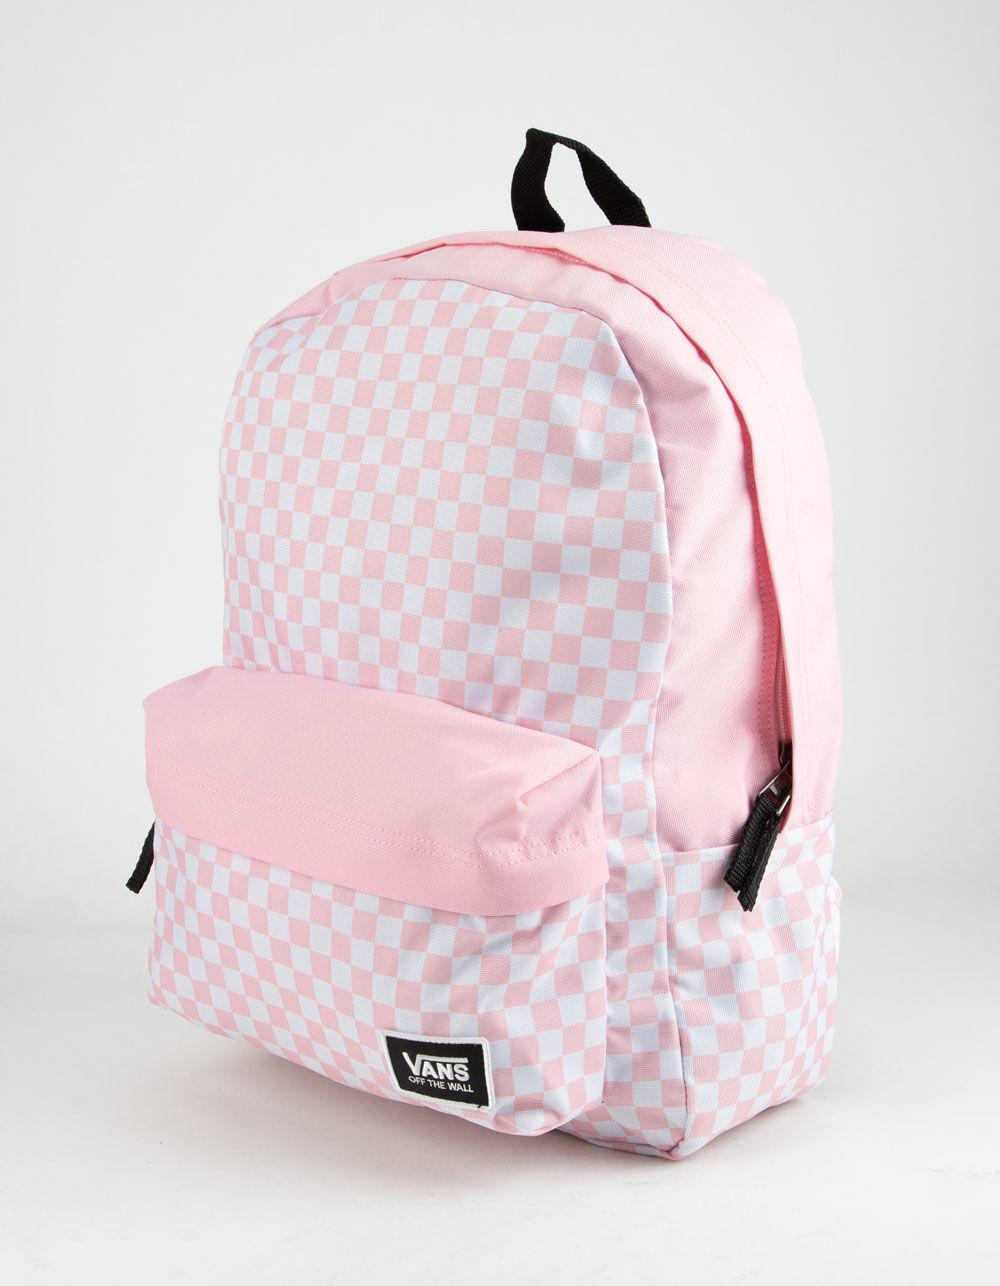 5b6c17fc7f Lyst - Vans Realm Classic Fairy Tale Checkerboard Backpack in Pink